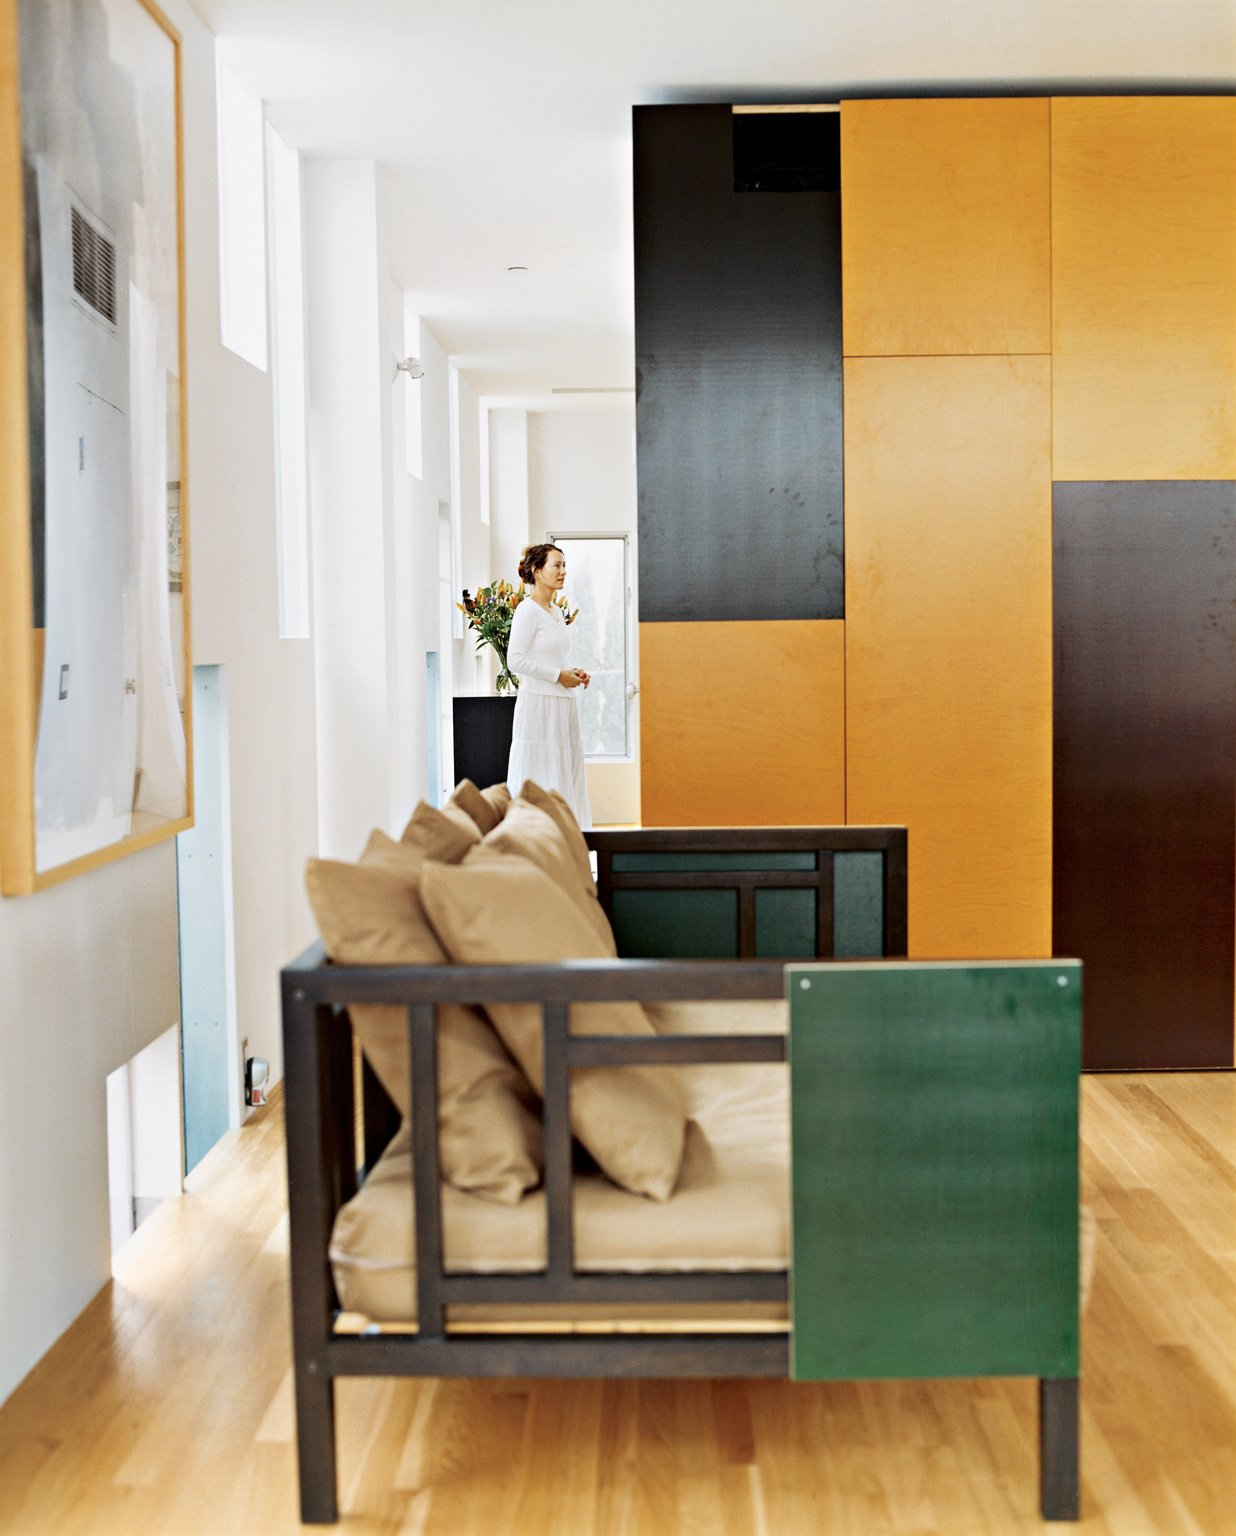 Operable panels of the built-in cabinetry, in chocolate and caramel colors, offer cues to the color palette of more mobile furnishings. Using the same panel material, the architect customized a West Elm couch for the living room.  Photo 4 of 8 in 8 Modern Paneled Rooms from Kaleidoscopic Cabinet